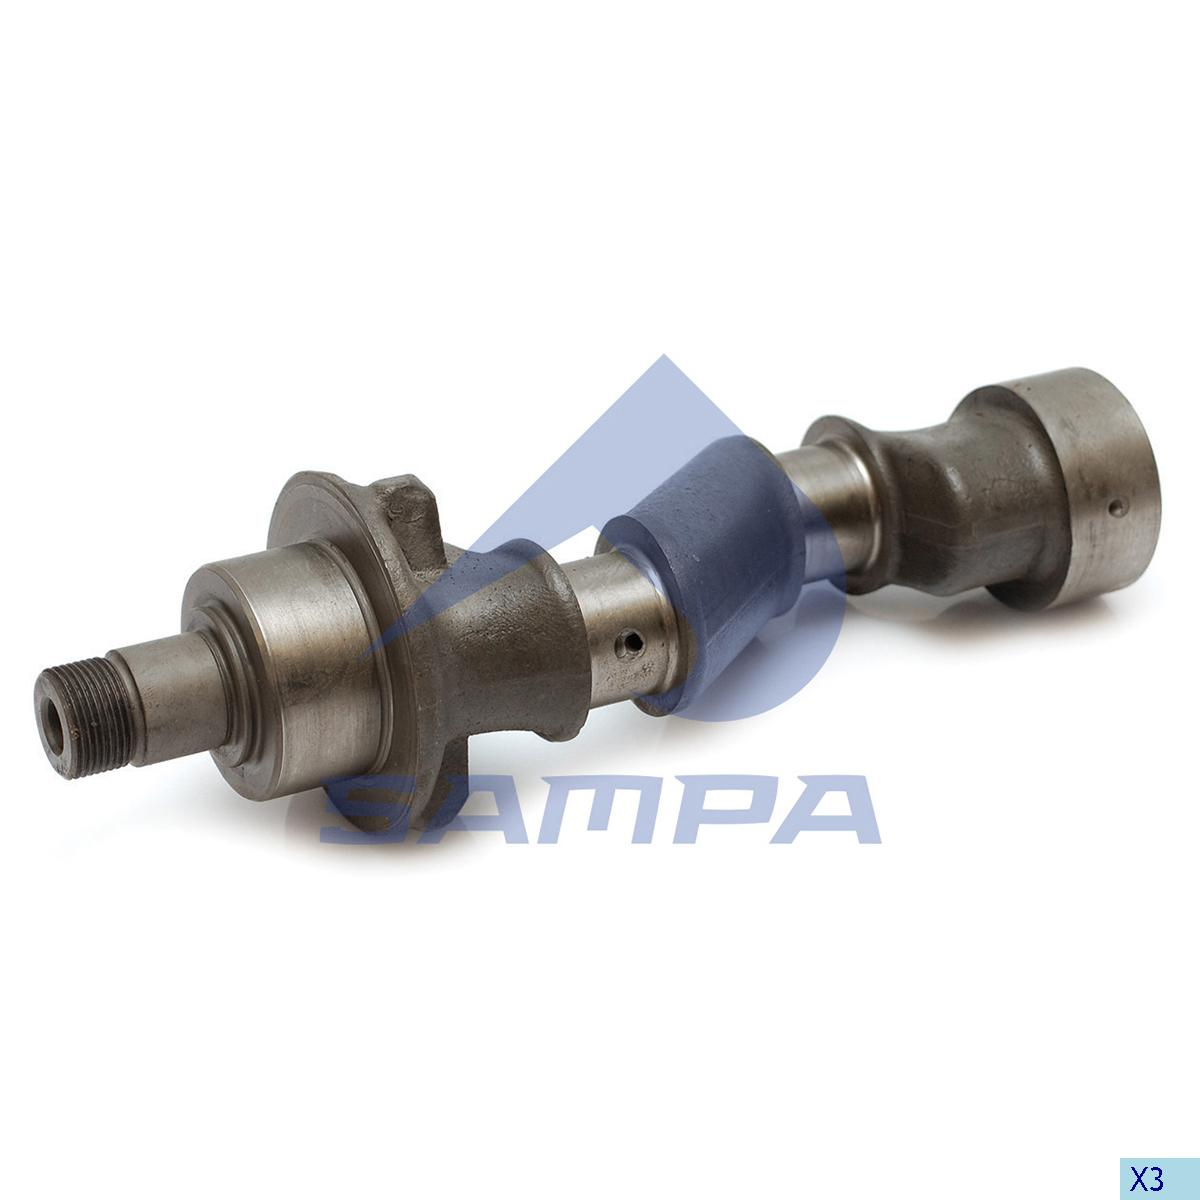 Crank Shaft, Cylinder Block, Daf, Compressed Air System